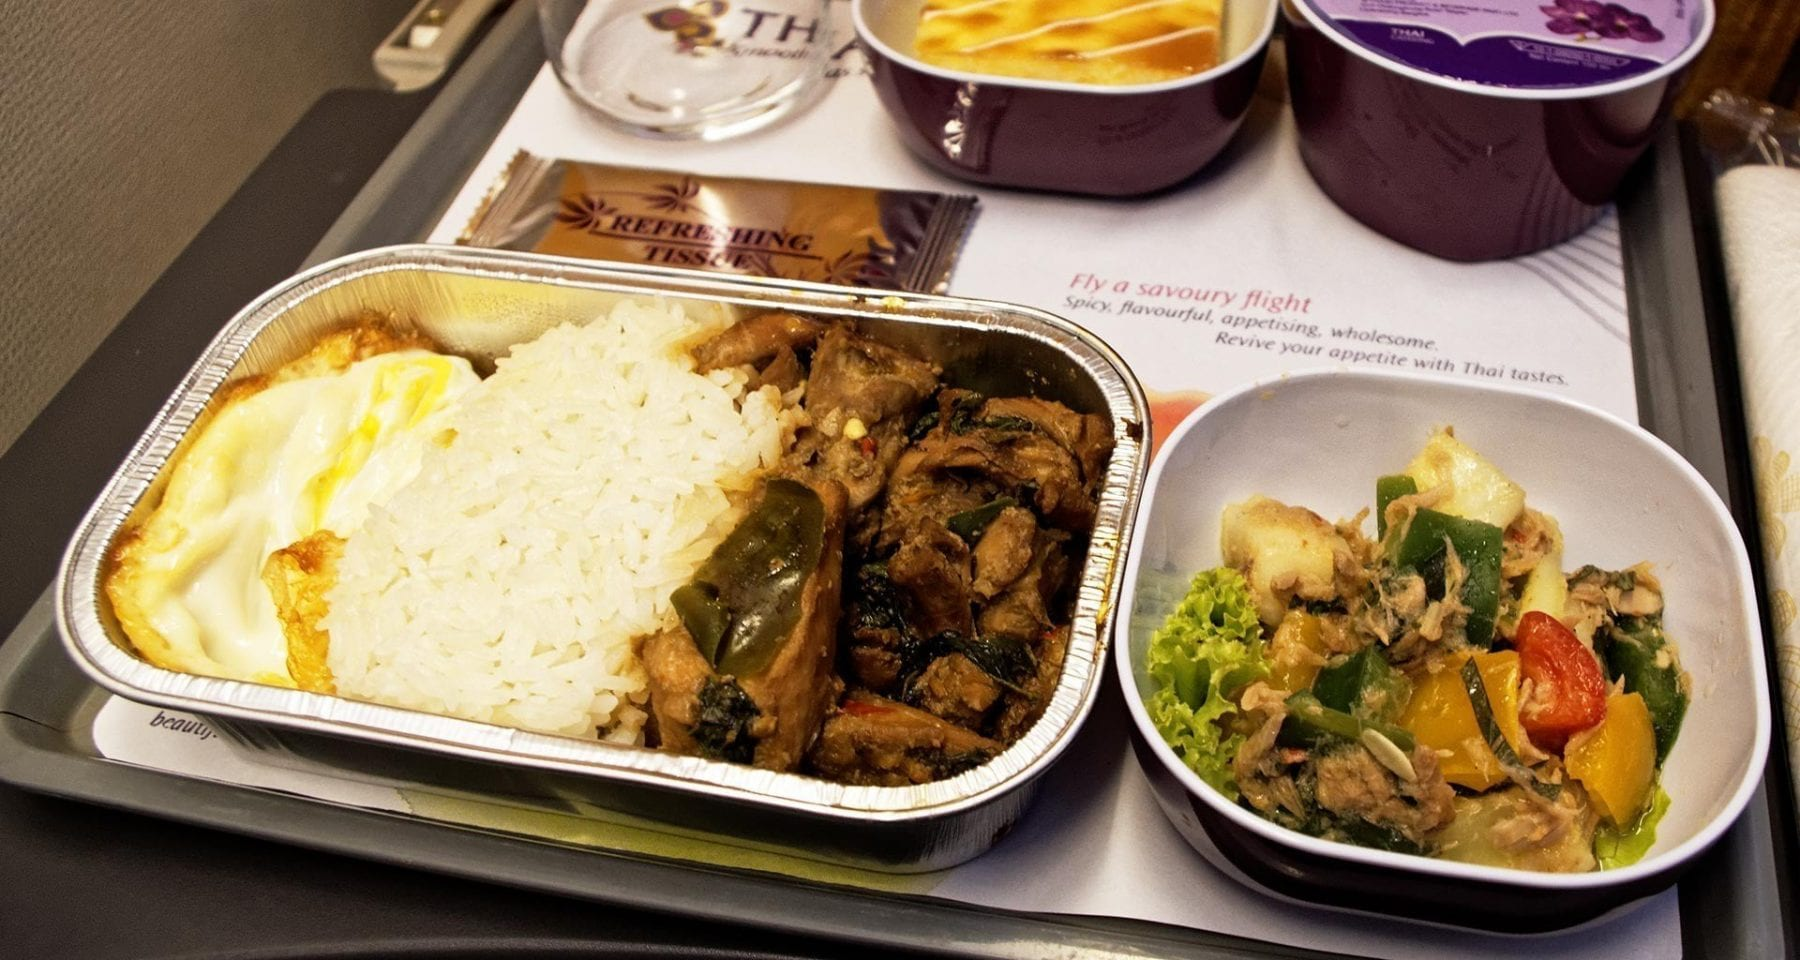 Thai airways rice with vegetables, salad and cake economy class